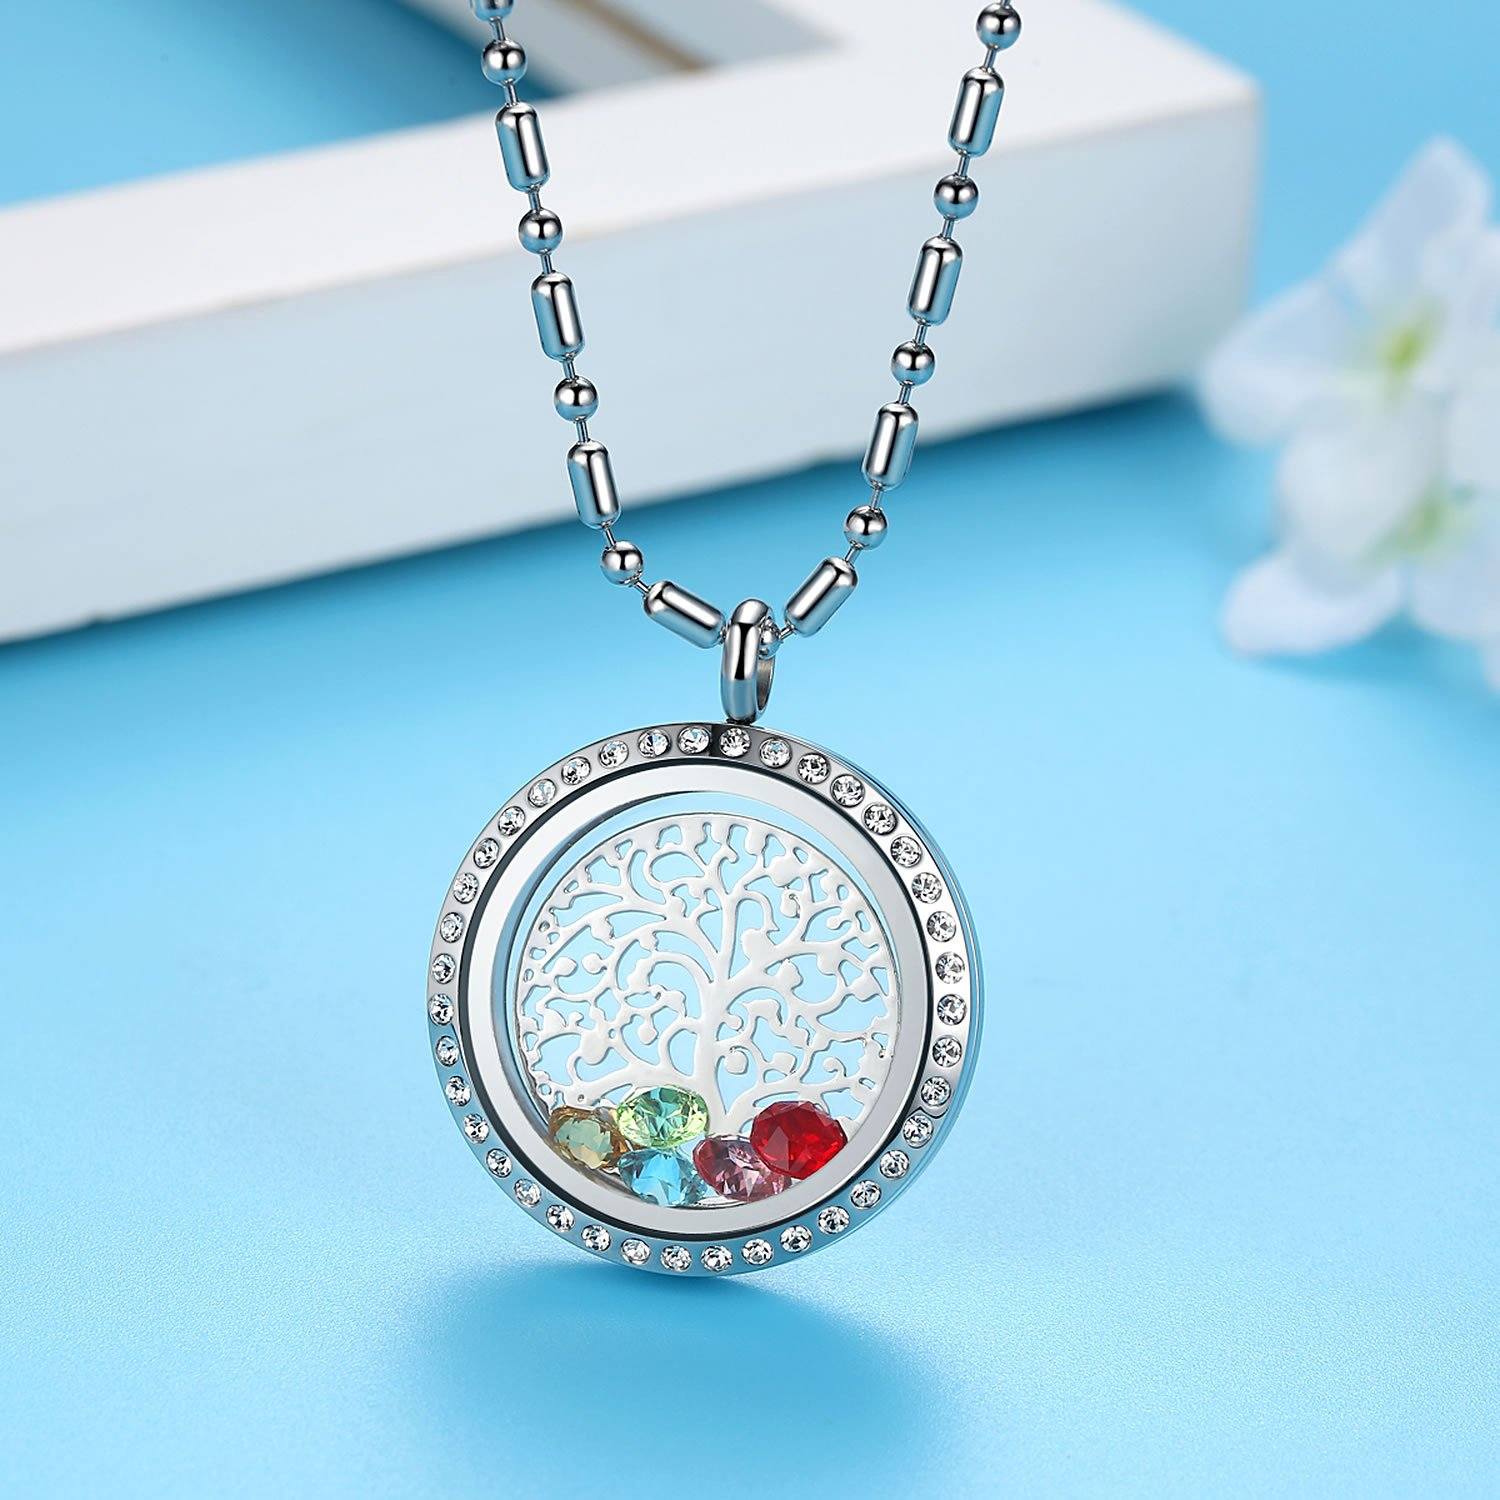 Family Tree of Life Birthstone Necklace Jewelry - Gifts for Mom Floating Charm Living Memory Lockets Pendant, Mother's day gifts, Birthday Gifts, Christmas day gifts, Anniversary Thanksgiving gifts by Feilaiger (Image #2)